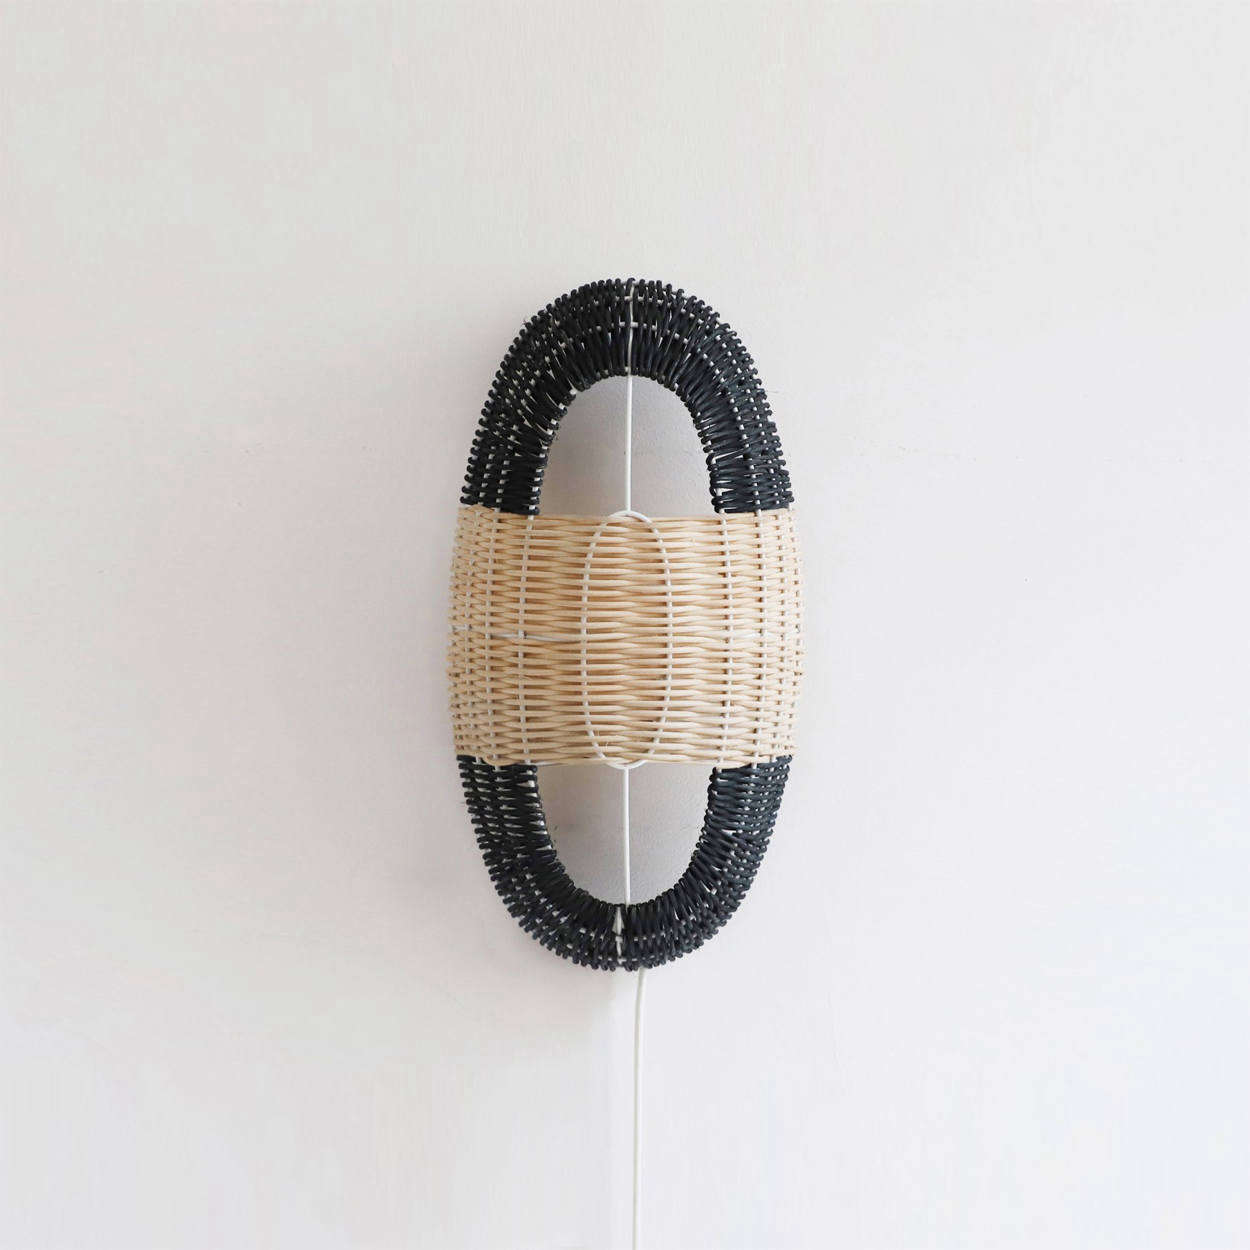 The Arc Small Lamp in Black and Natural Rattan is €5.